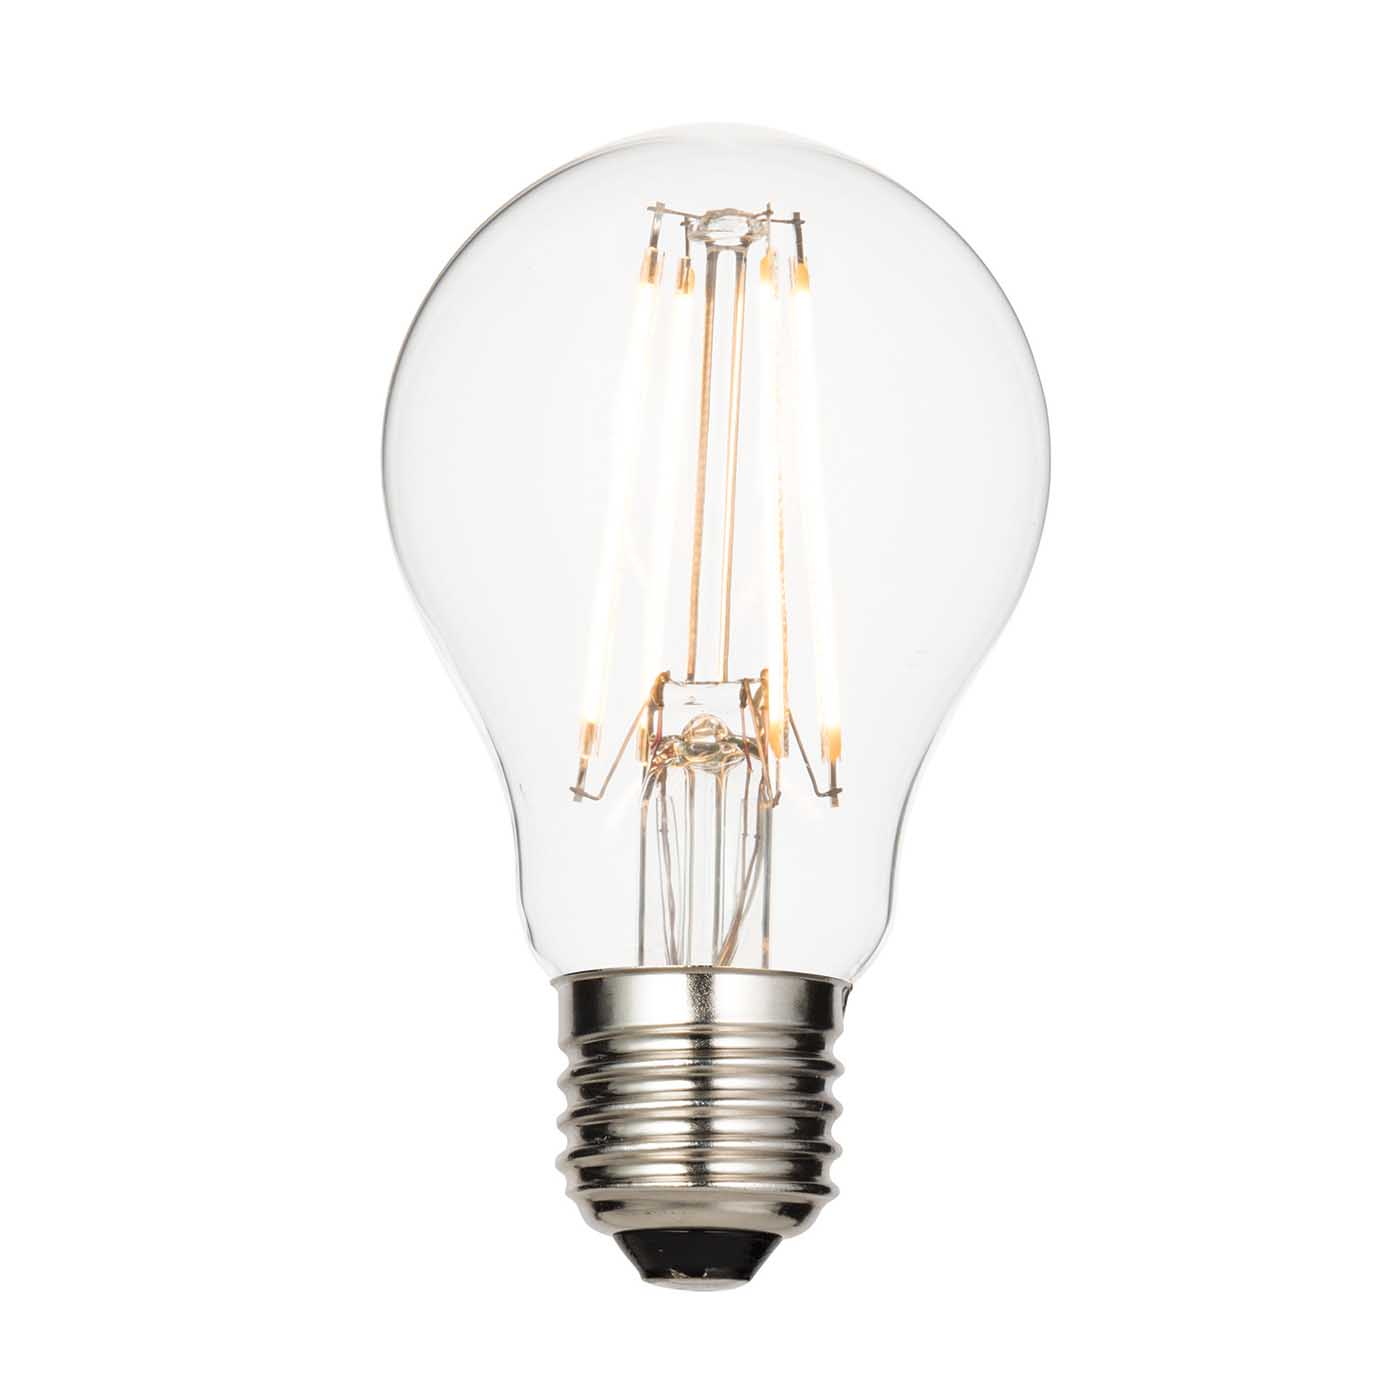 saxby e27 led light bulb filament gls 6 2w warm white 2700k liminaires. Black Bedroom Furniture Sets. Home Design Ideas